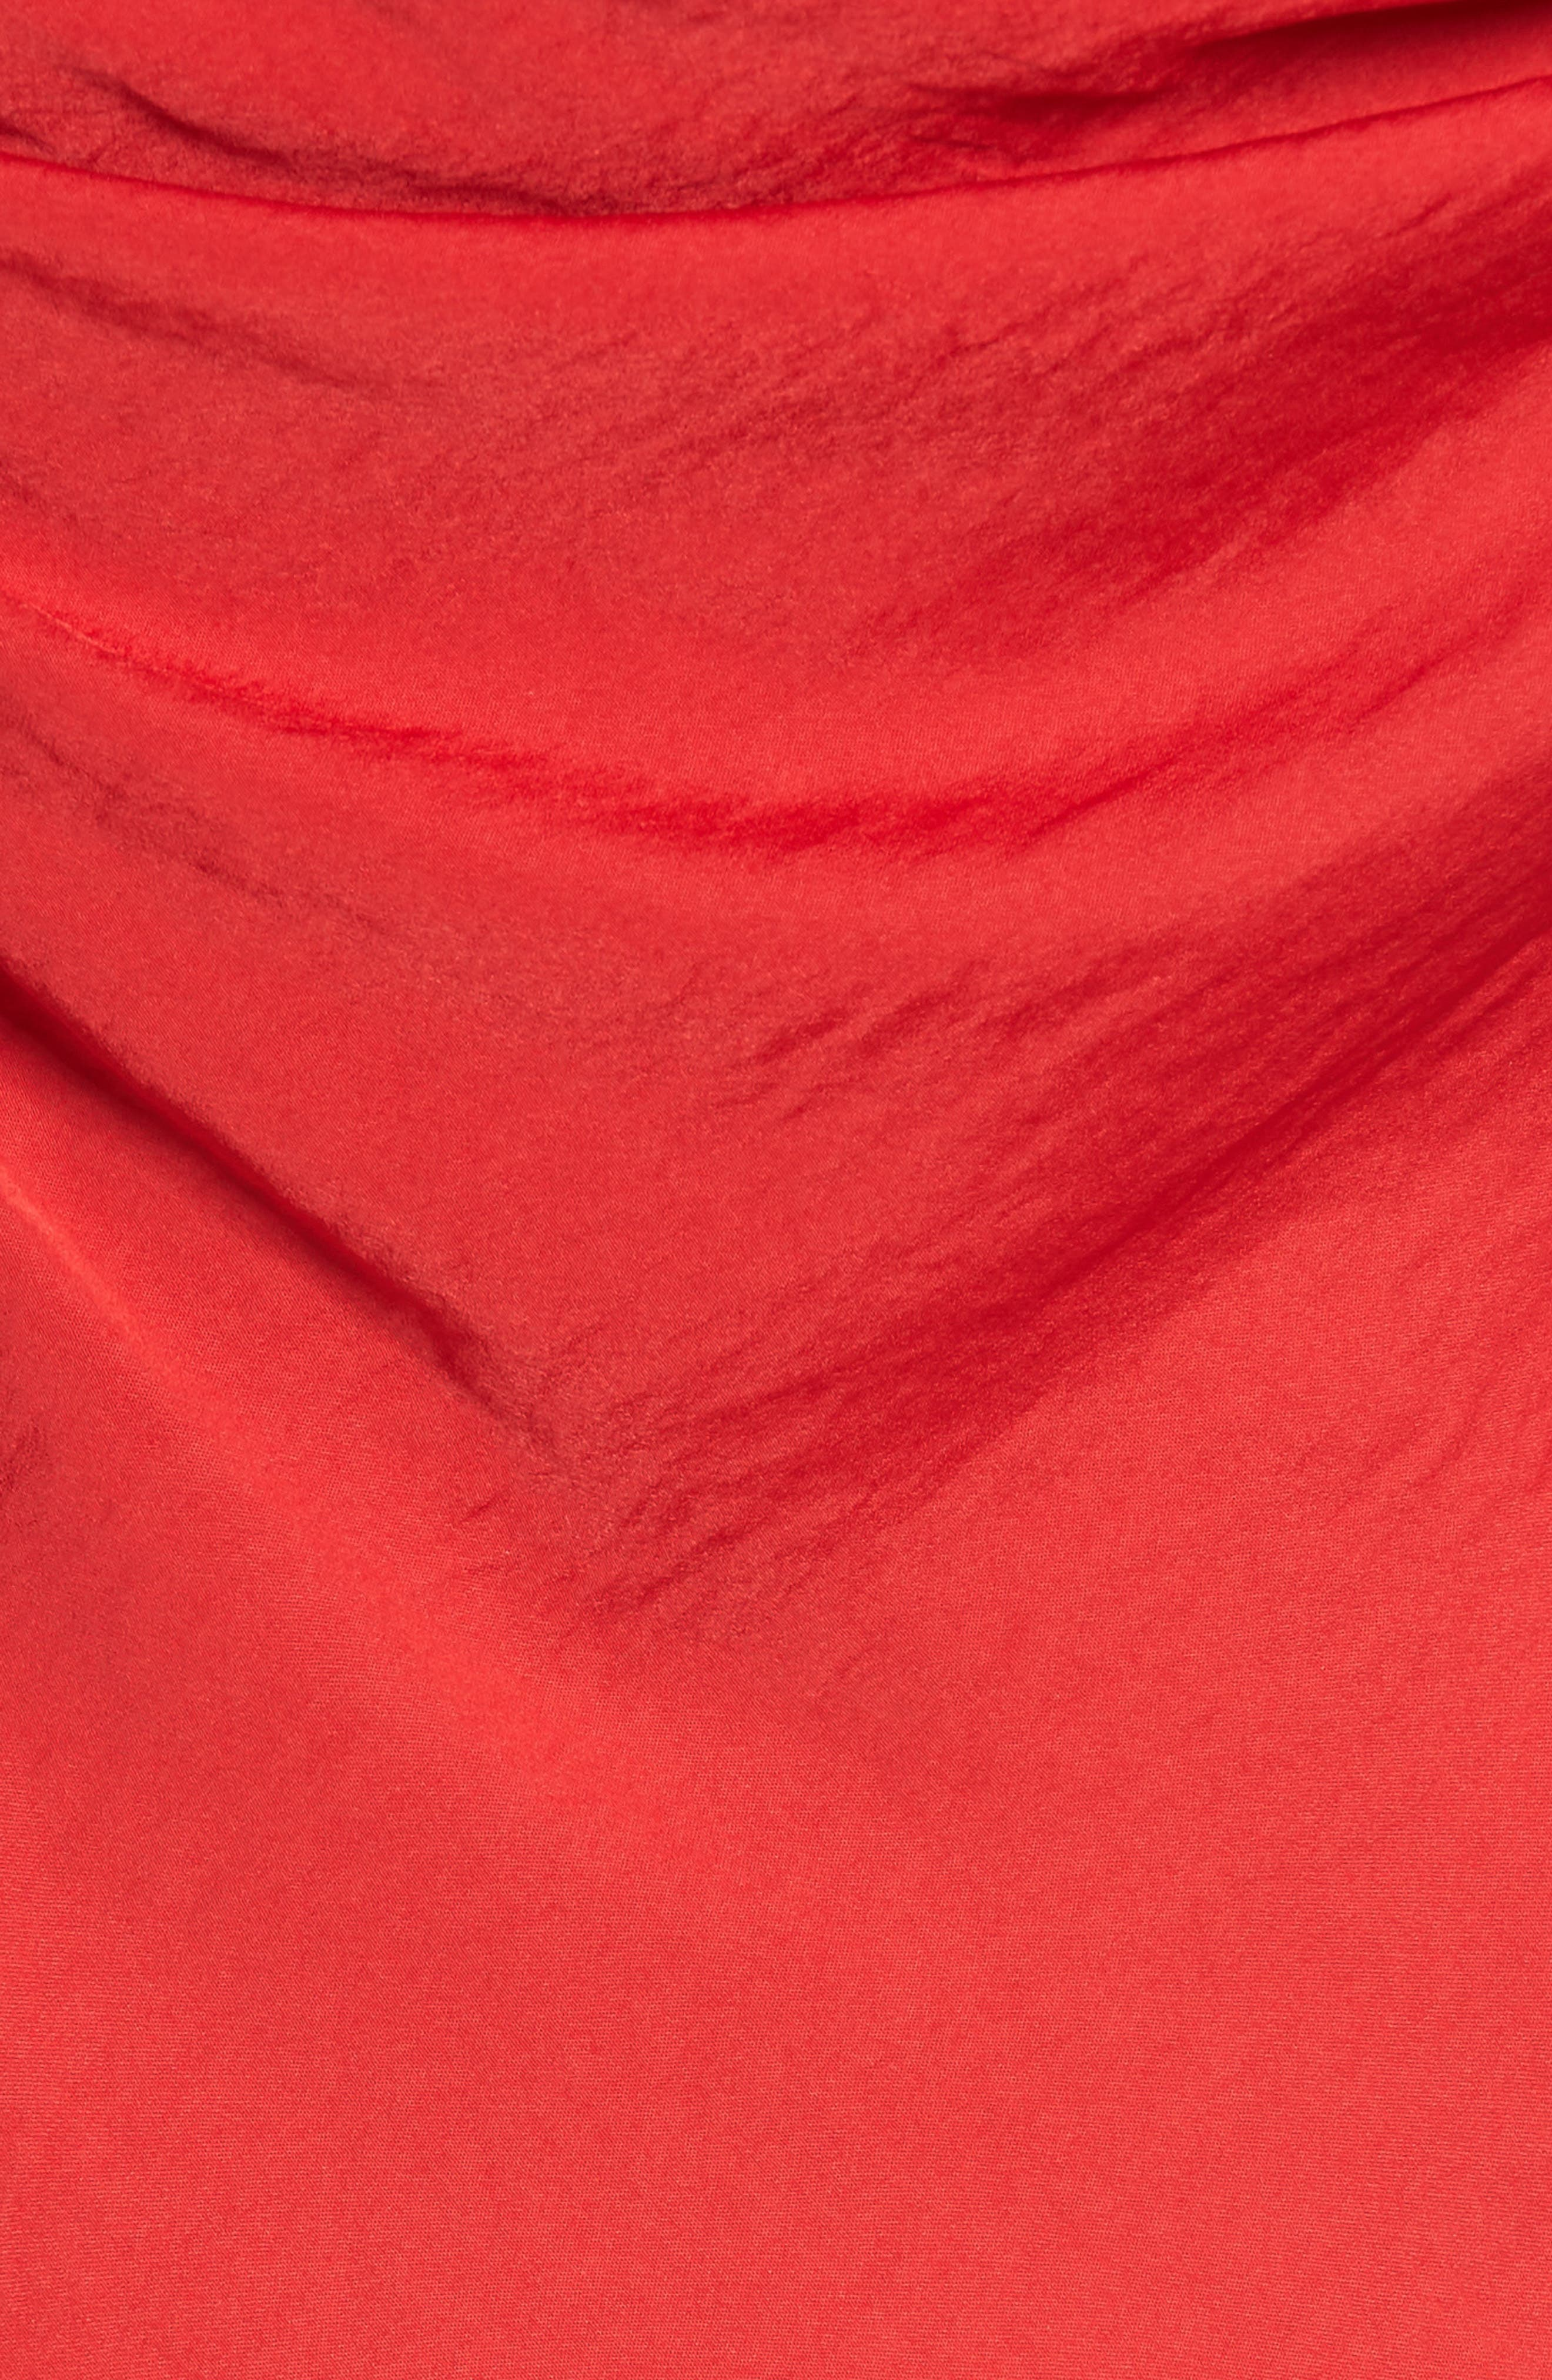 Cowl Neck Camisole,                             Alternate thumbnail 5, color,                             True Red